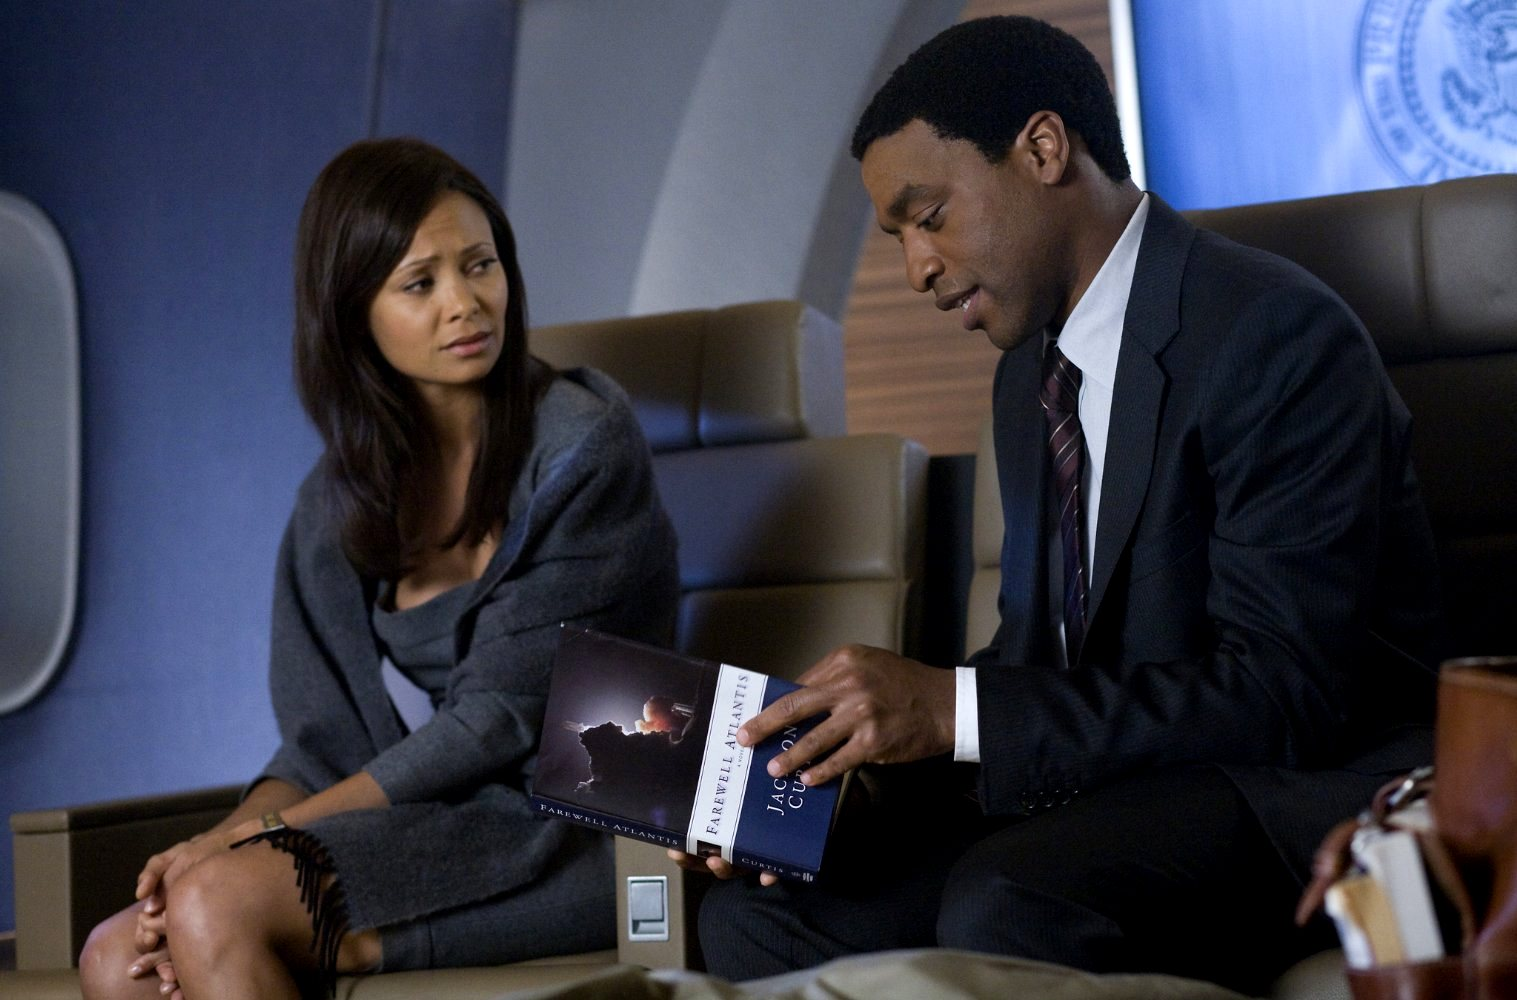 Thandie Newton with Chiwetel Ejiofor as the Obama stand-in in 2012 (2009)